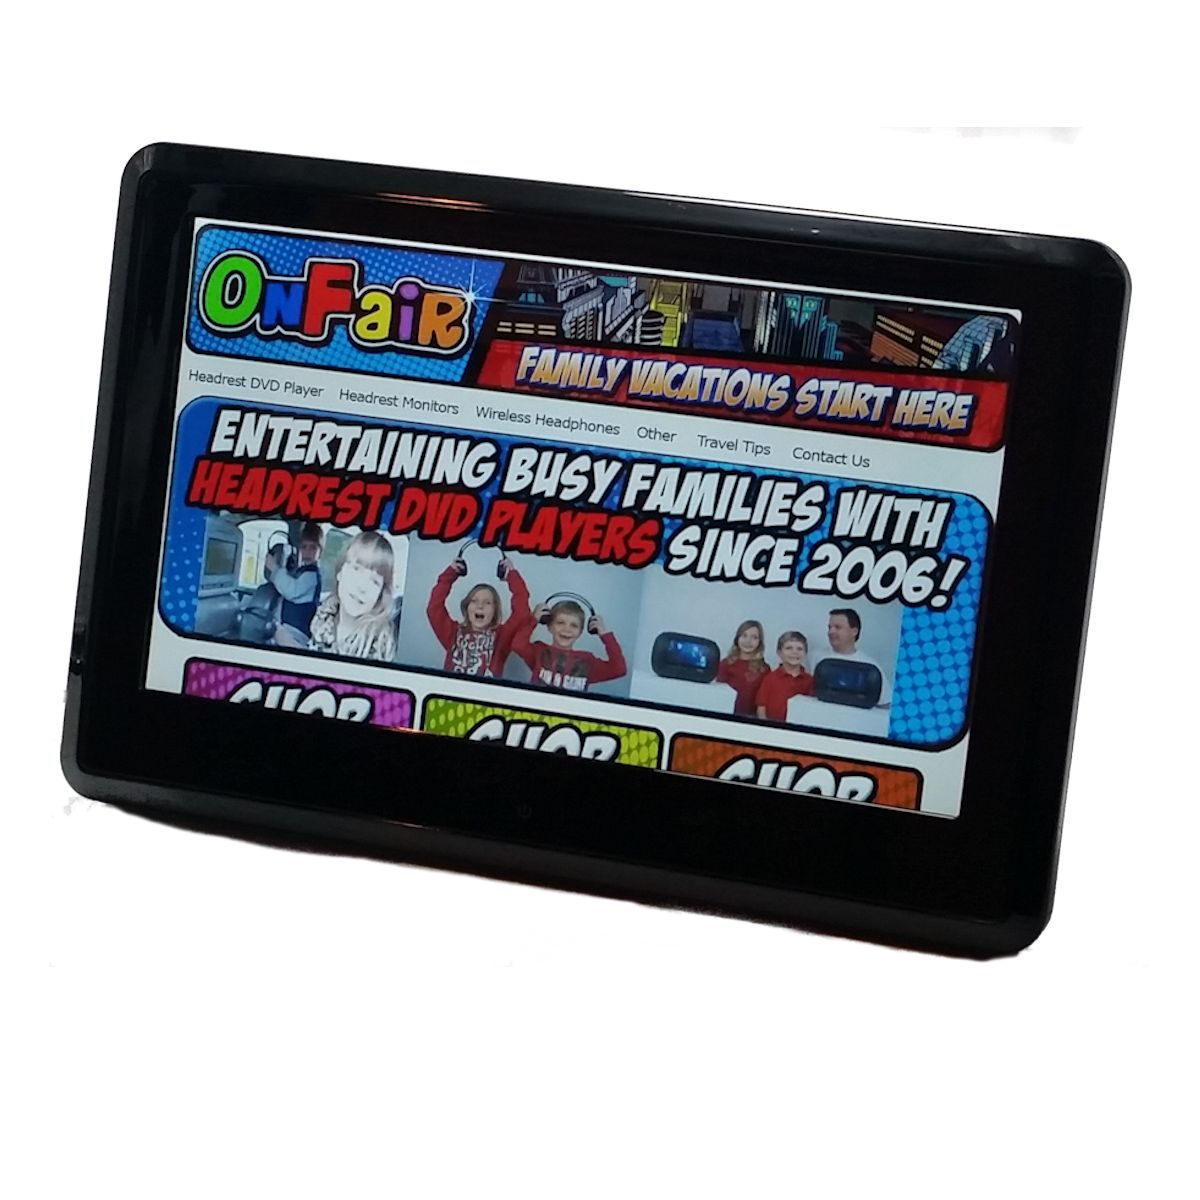 autotain edge active headrest DVD player monitor 10 inch touch screen